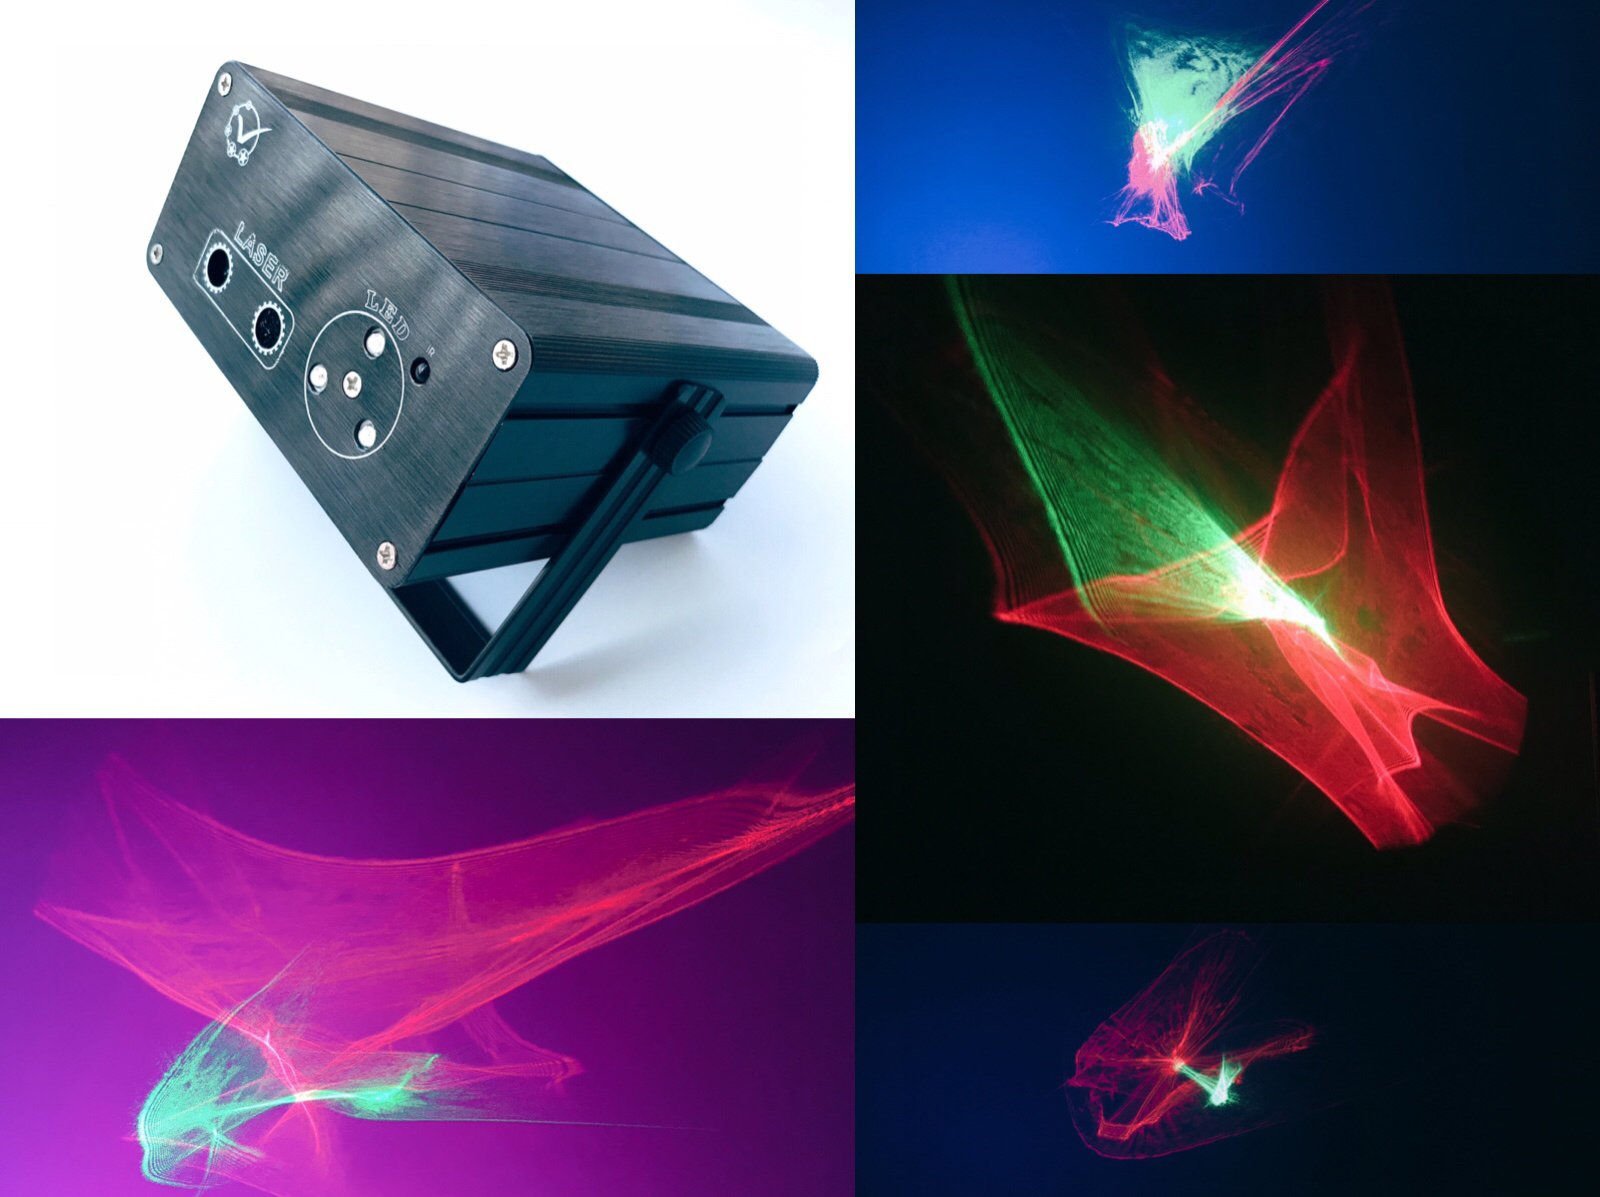 Abstract 3D Graphics Laser Light 5Light Source 5V 2A Control Background Color With IR Remote Control Voice Activated Stage Lamp Projector Lamp Lumiere DJ Club Party Live Show Projector square by Zaytoner